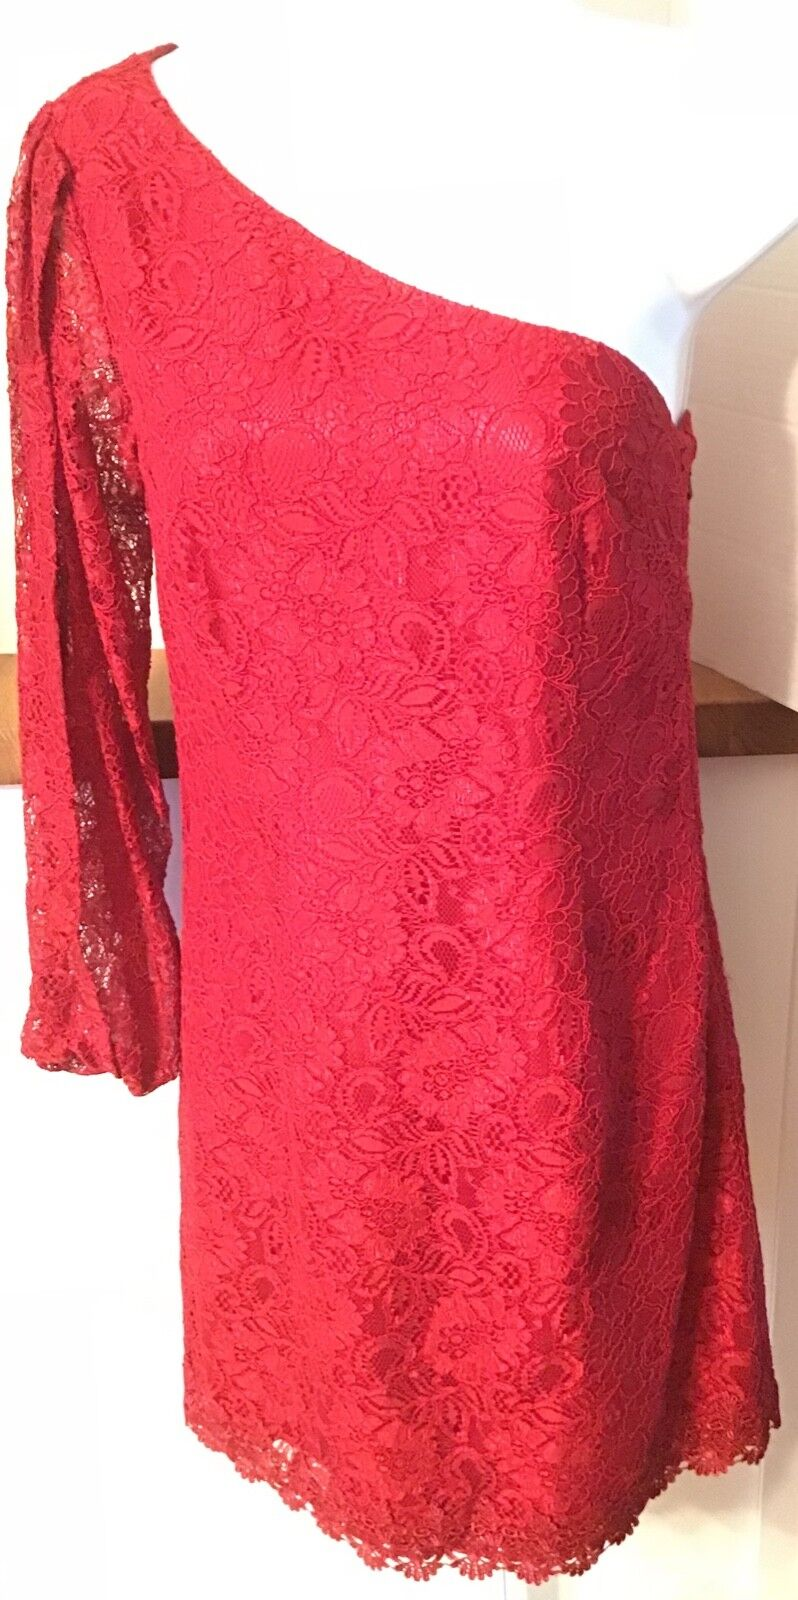 Laundry by Shelli Segal rot Lace Cocktail Party Dress Größe 0 One Sleeve damen